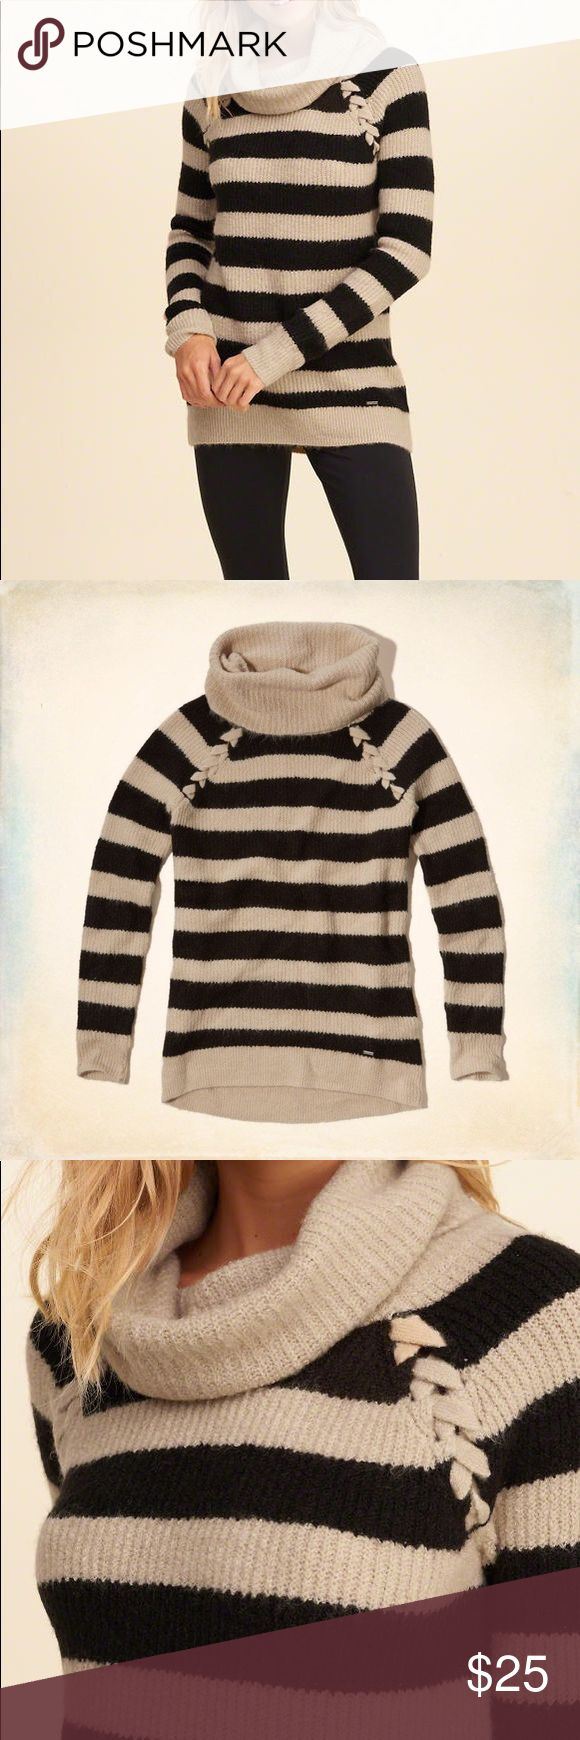 Hollister Striped CowlNeck Tunic Sweater Black/Tan A beautiful supersoft Hollister Co. sweater featuring a cozy cowl neck and easy oversized fit. Classic black/tan striped and ribbed texture in warm neutrals, perfect for layering. Sophisticated lace-up detailing at the shoulder dresses up the style with current trend, and a logo plaque at left hip. Only worn once and looks new! Size large. Sweaters Cowl & Turtlenecks